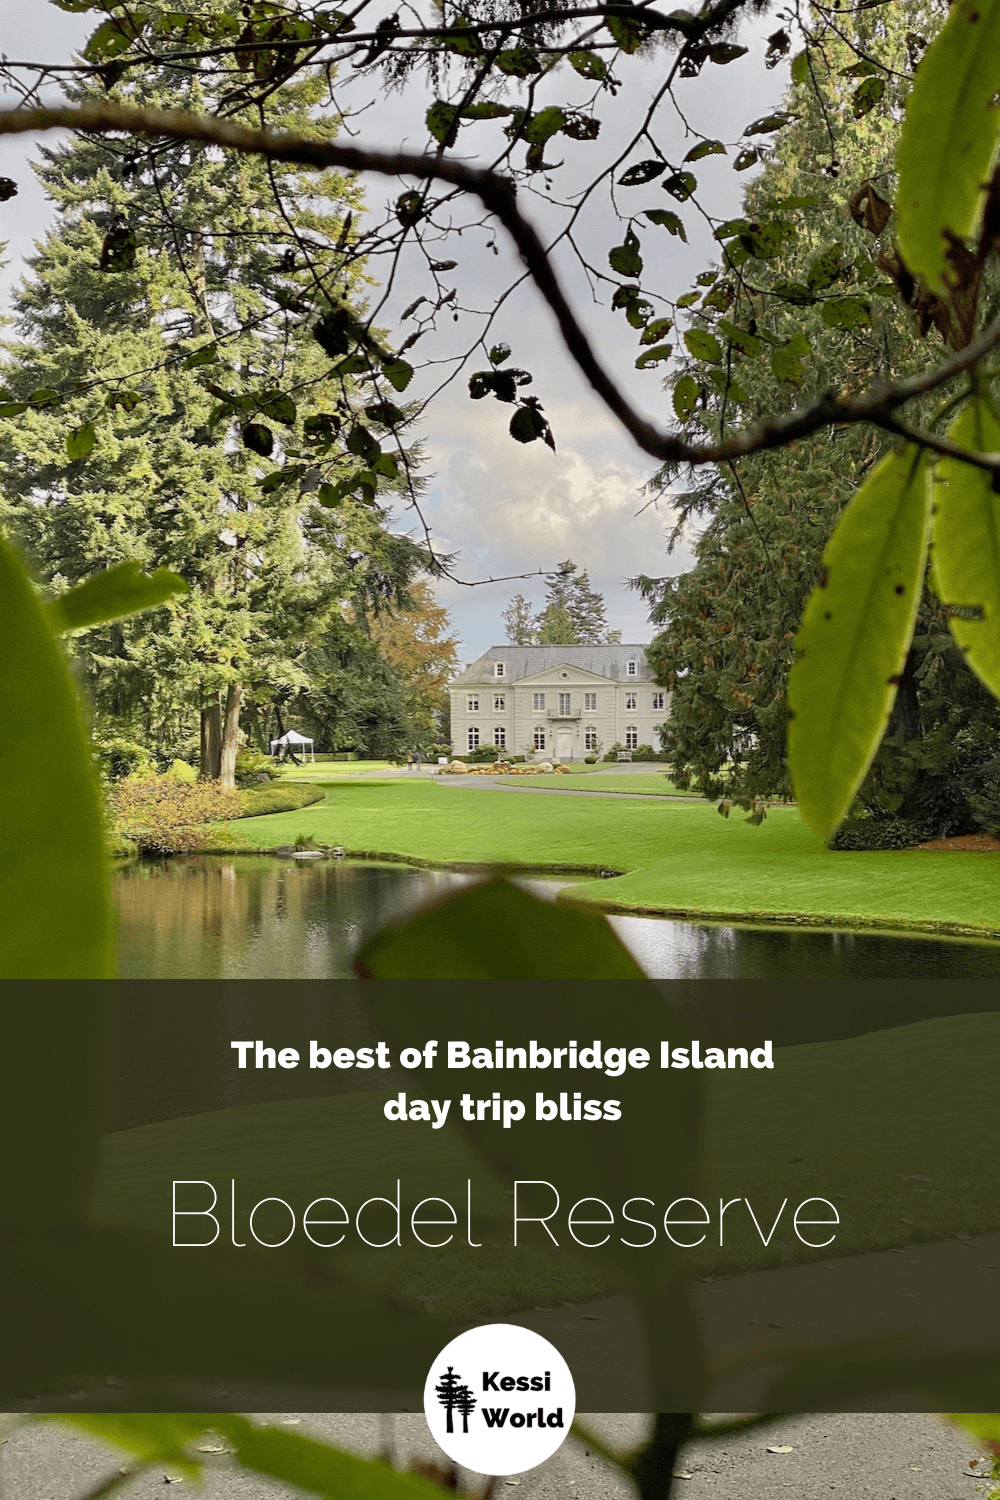 This Pinterest tile shows The Residence at Bloedel Reserve on Bainbridge Island sits regally above a large grassy lawn that surrounds a peaceful lake.